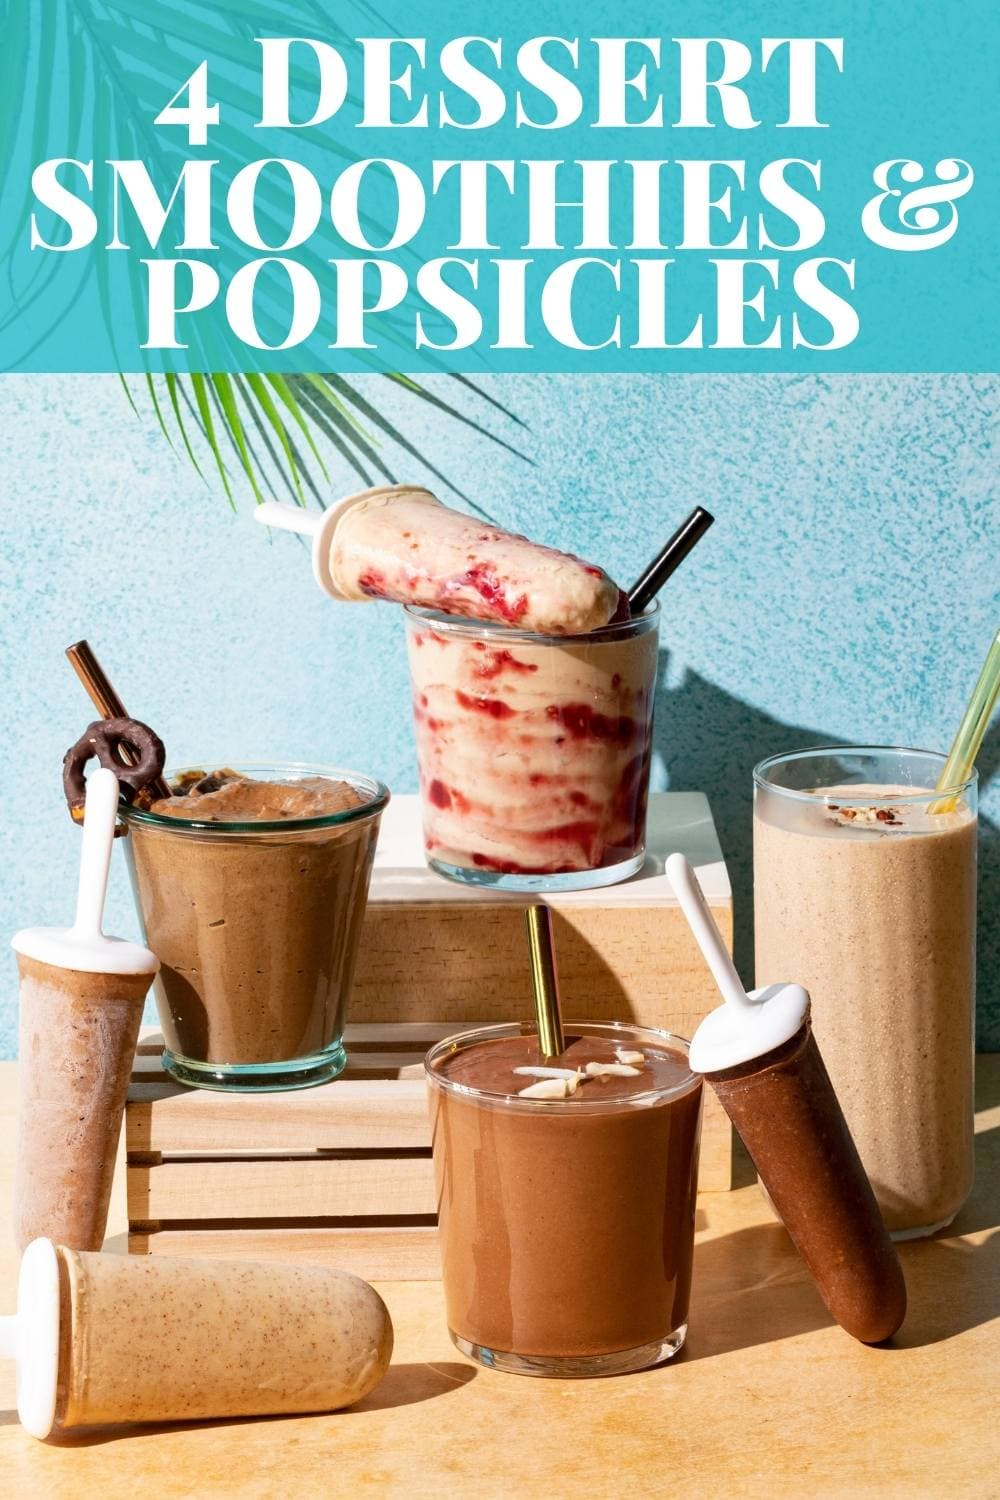 4 Dessert Smoothies and Popsicles that are decadent and healthy! via @bessiebakes